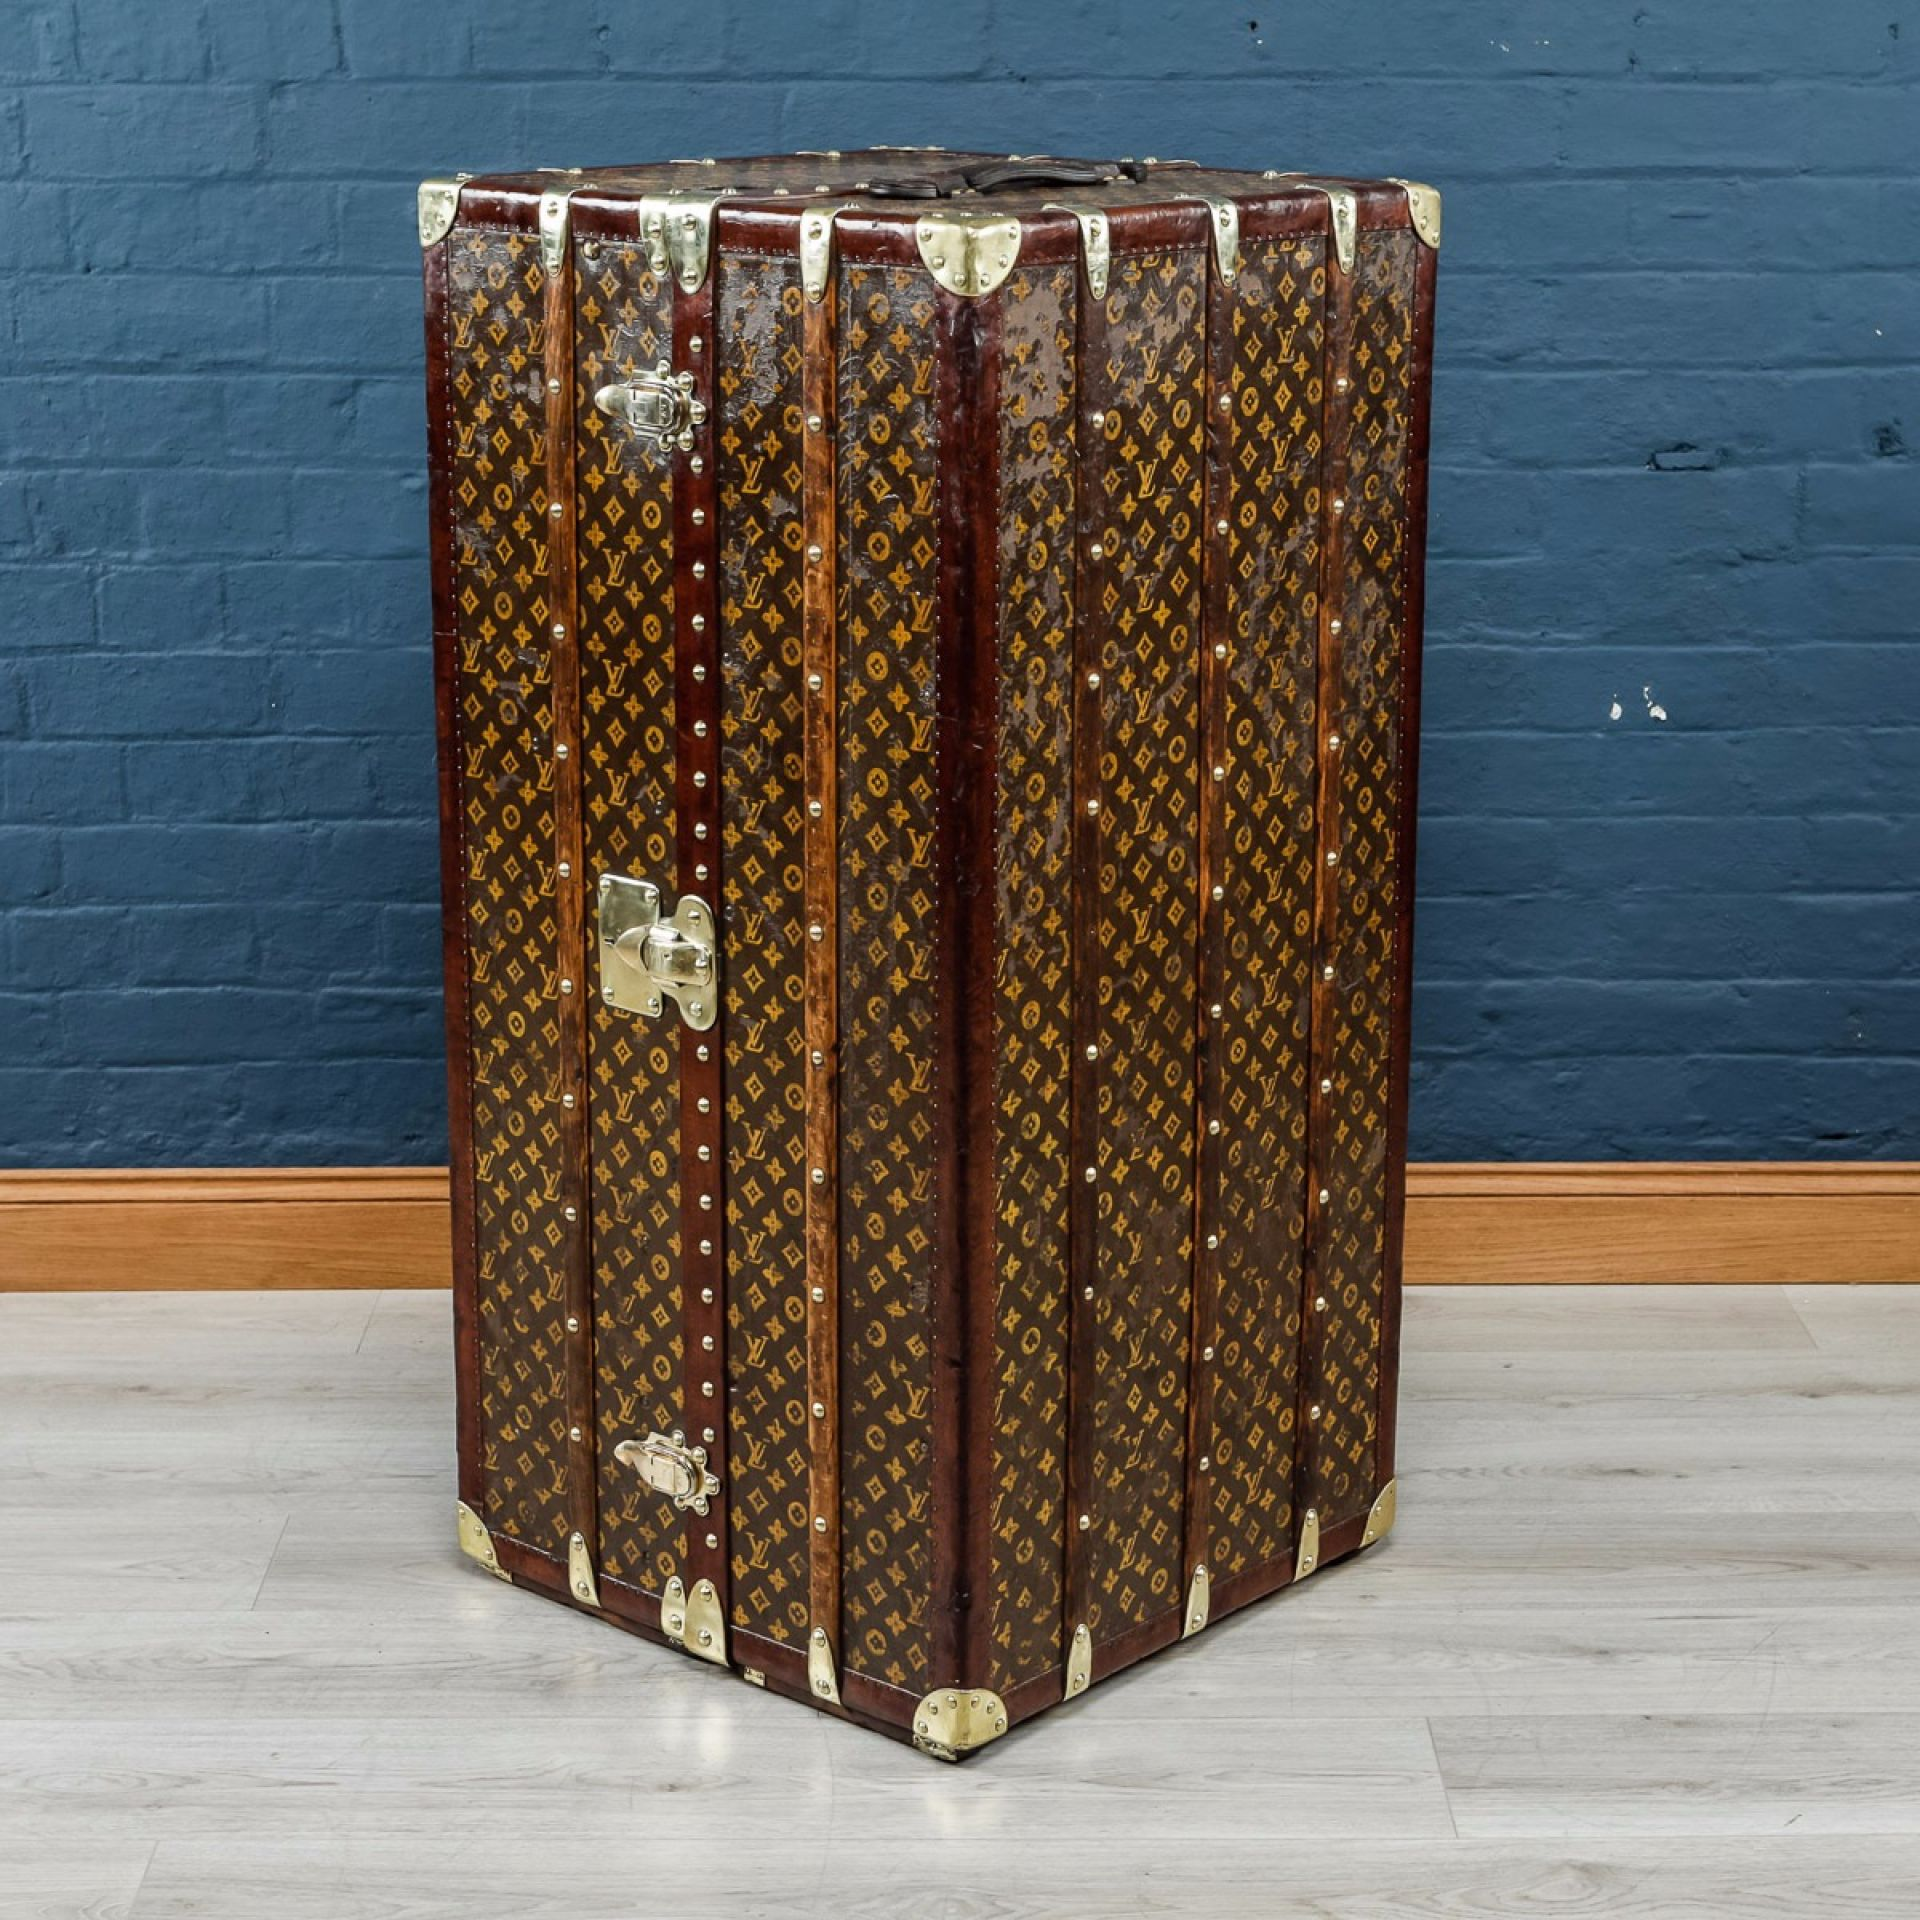 ANTIQUE 20thC UNUSUAL LOUIS VUITTON WARDROBE TRUNK c.1920